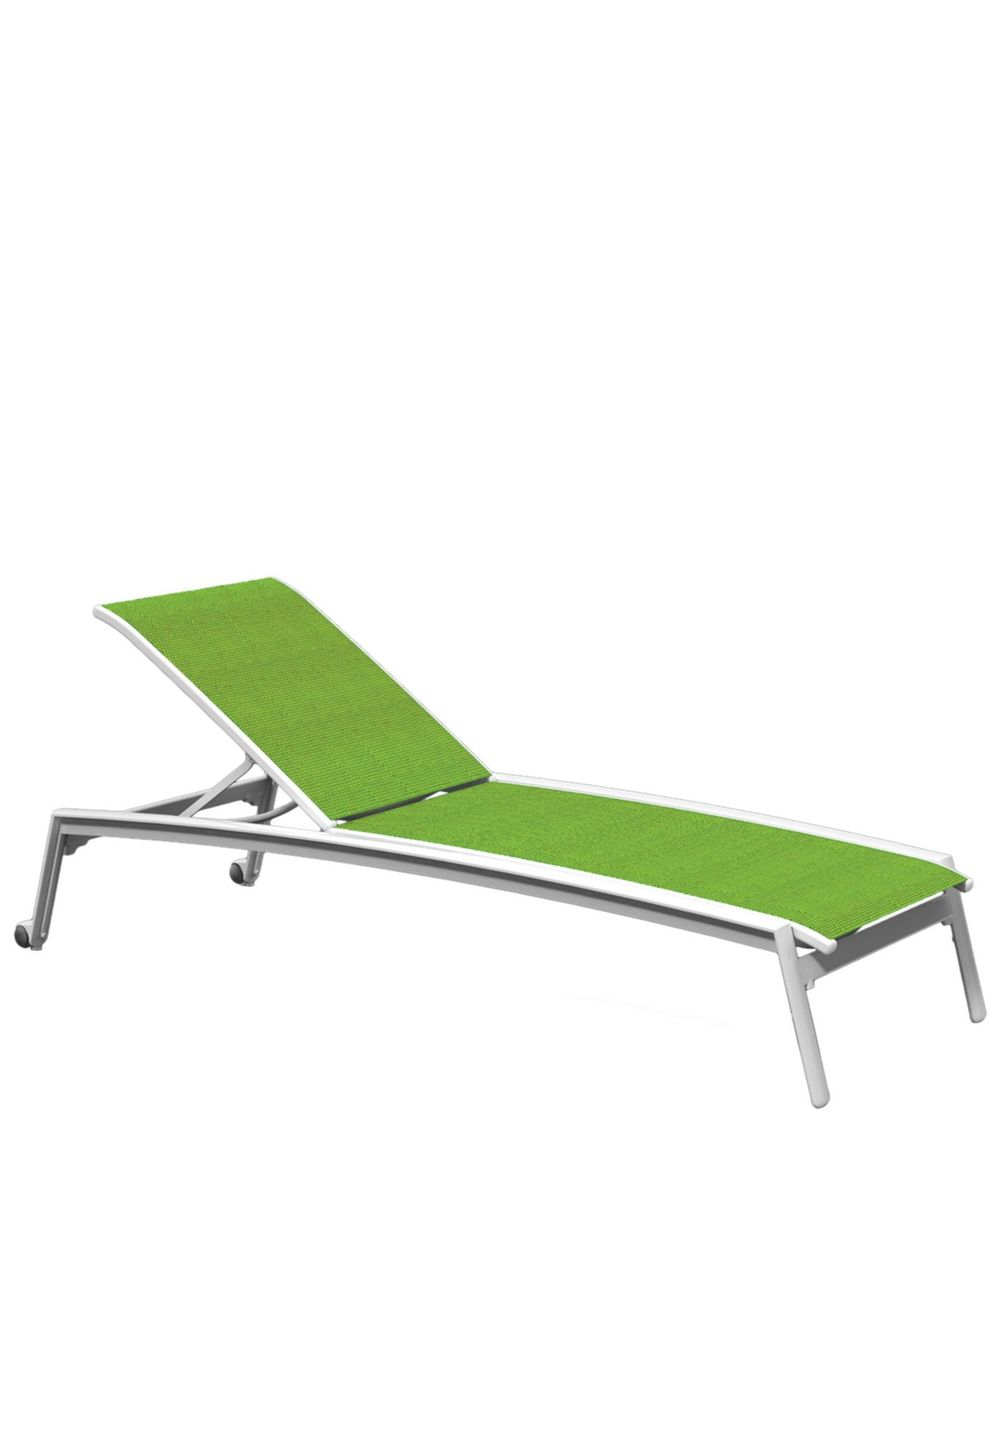 Tropitone Furniture - Chaise Lounge with Wheels